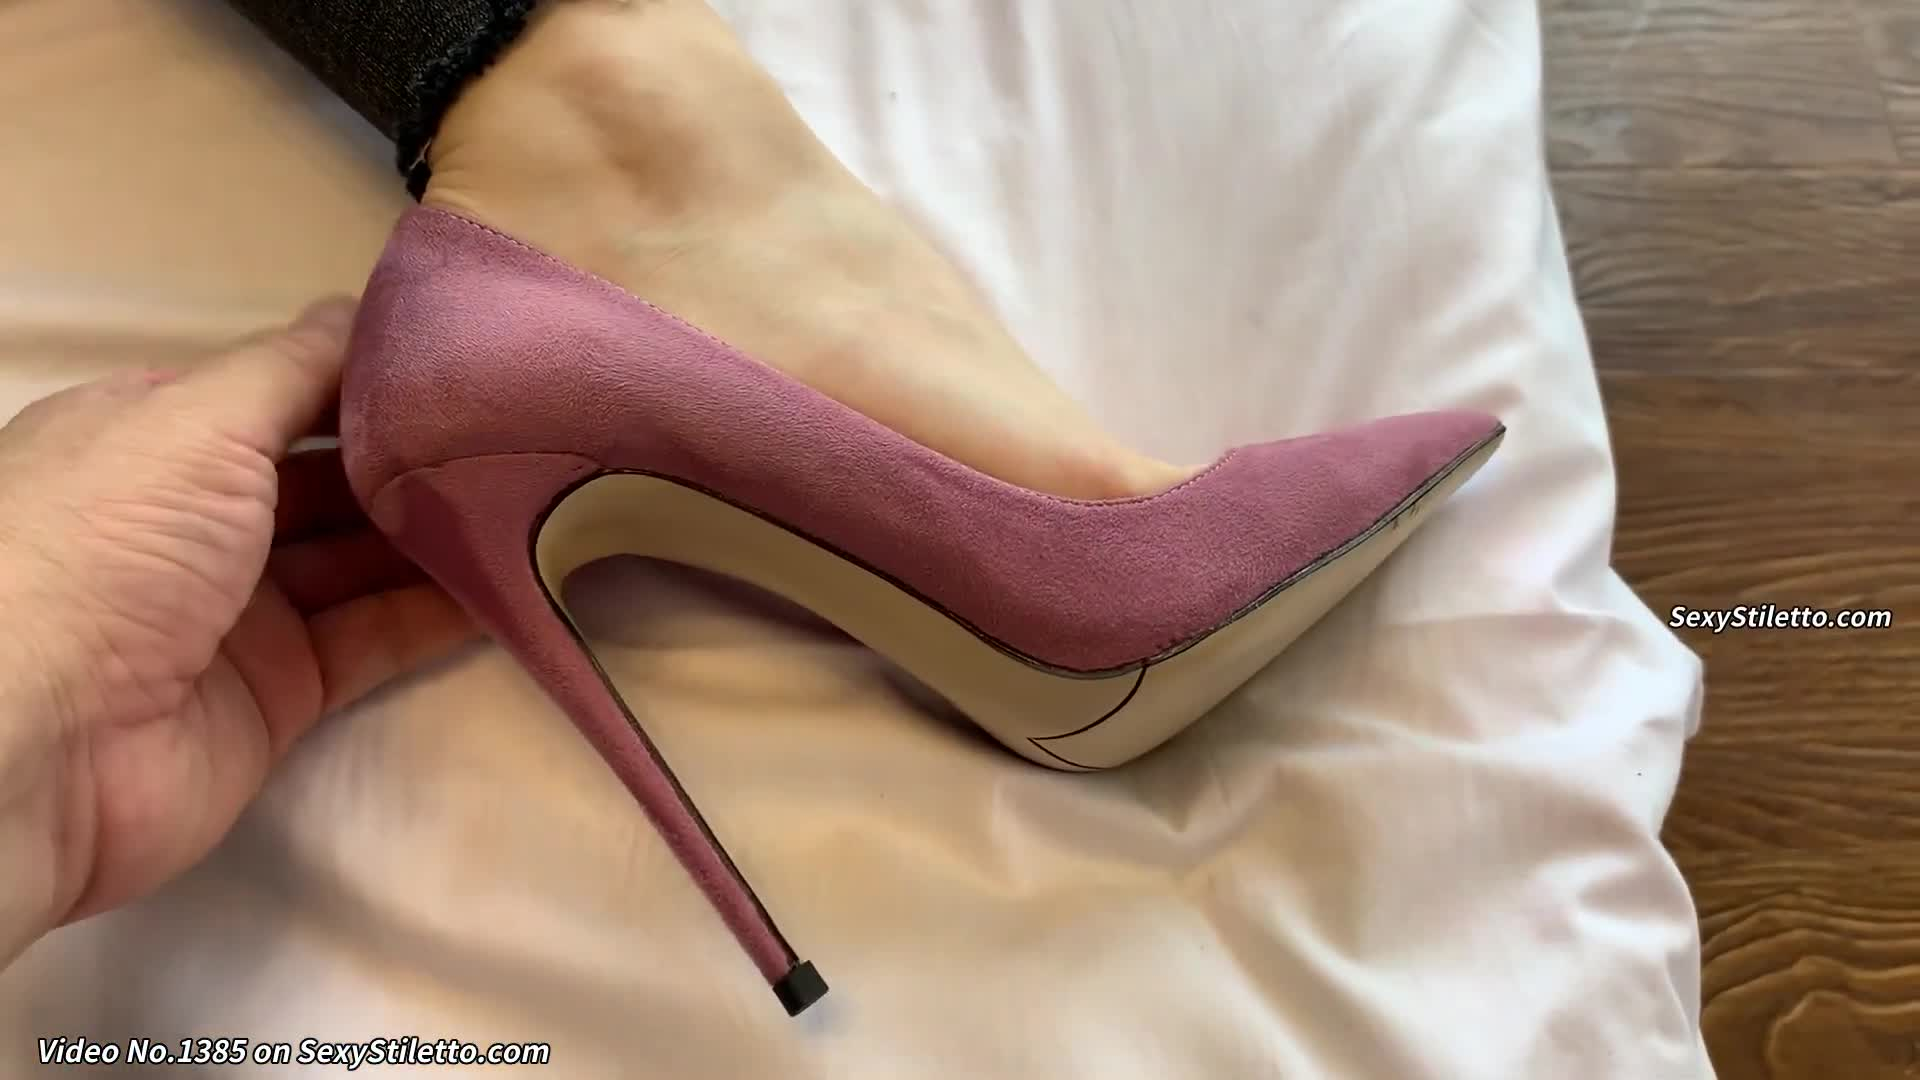 Foot Fetish and Sexy Stiletto Videos from AISAN Part 274